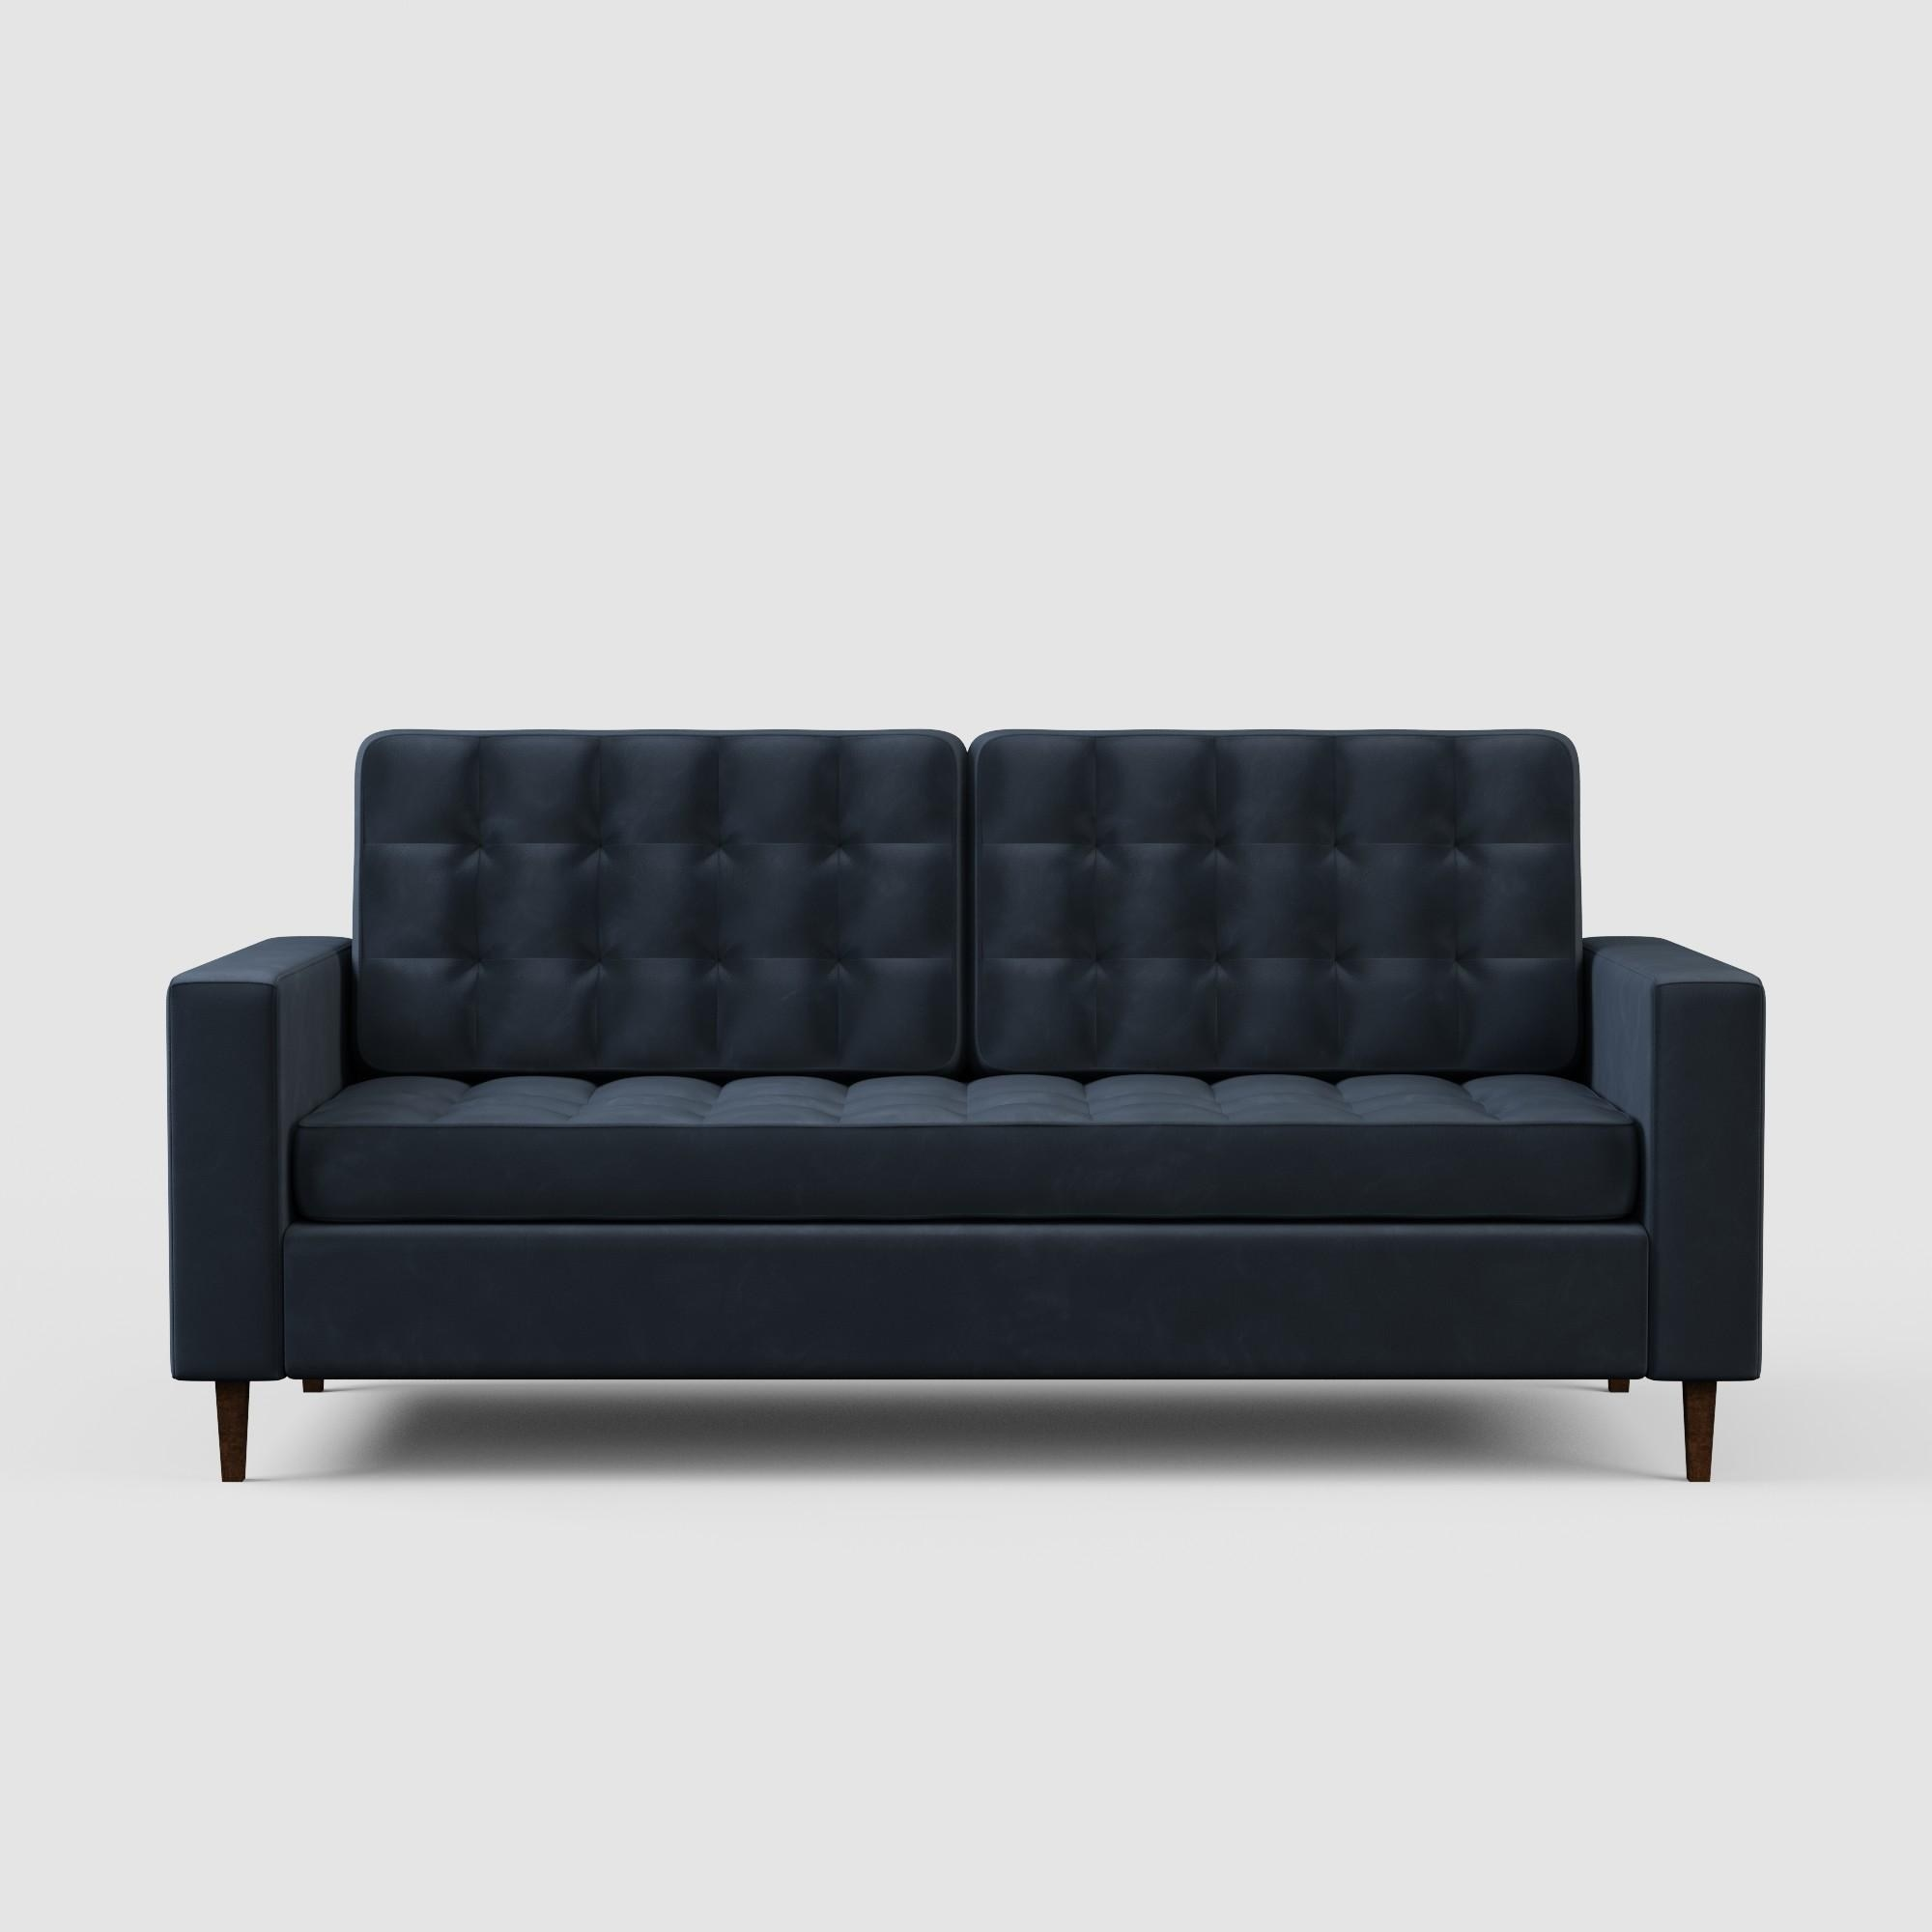 The sofa with buttonless tufting on each cushion and square arms